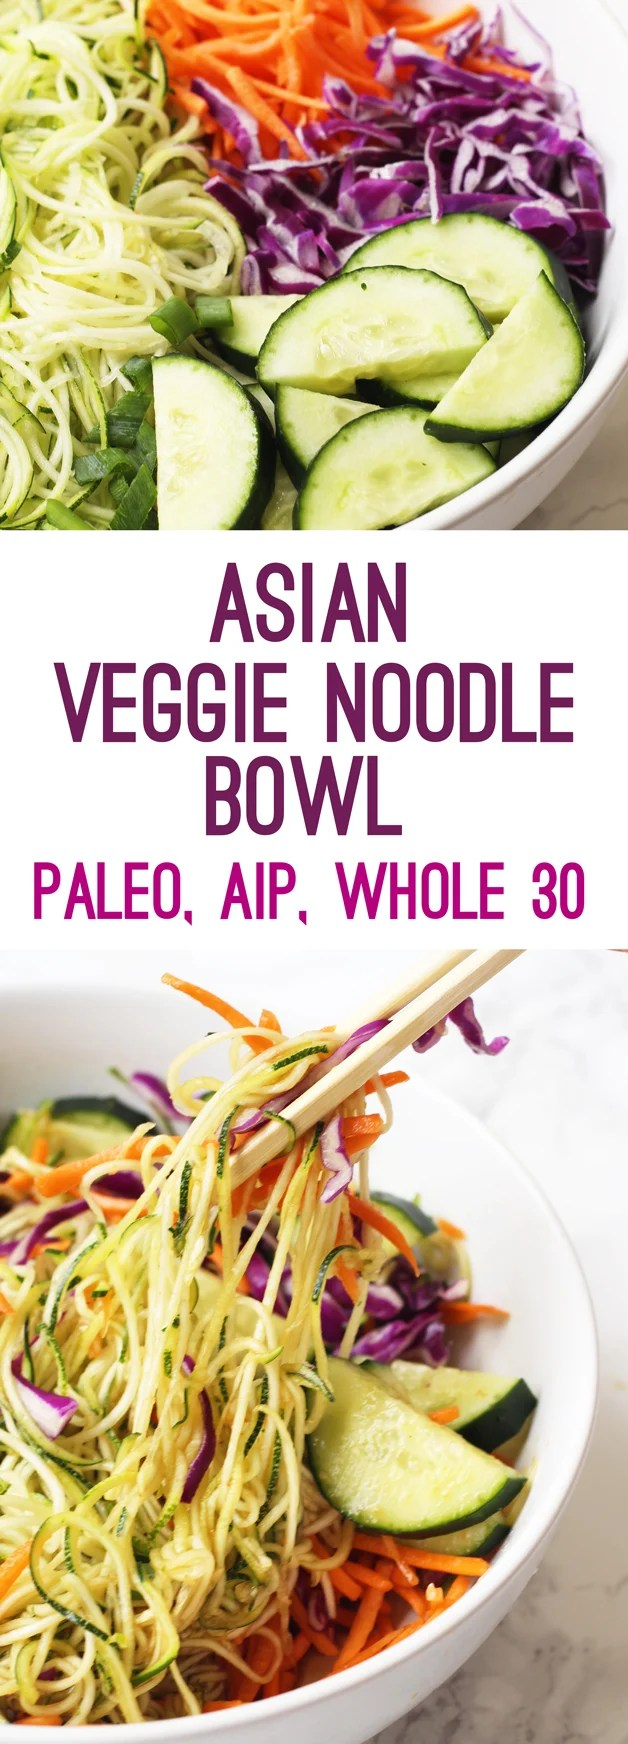 Asian Veggie Noodle Bowl (Whole 30, Paleo, AIP)